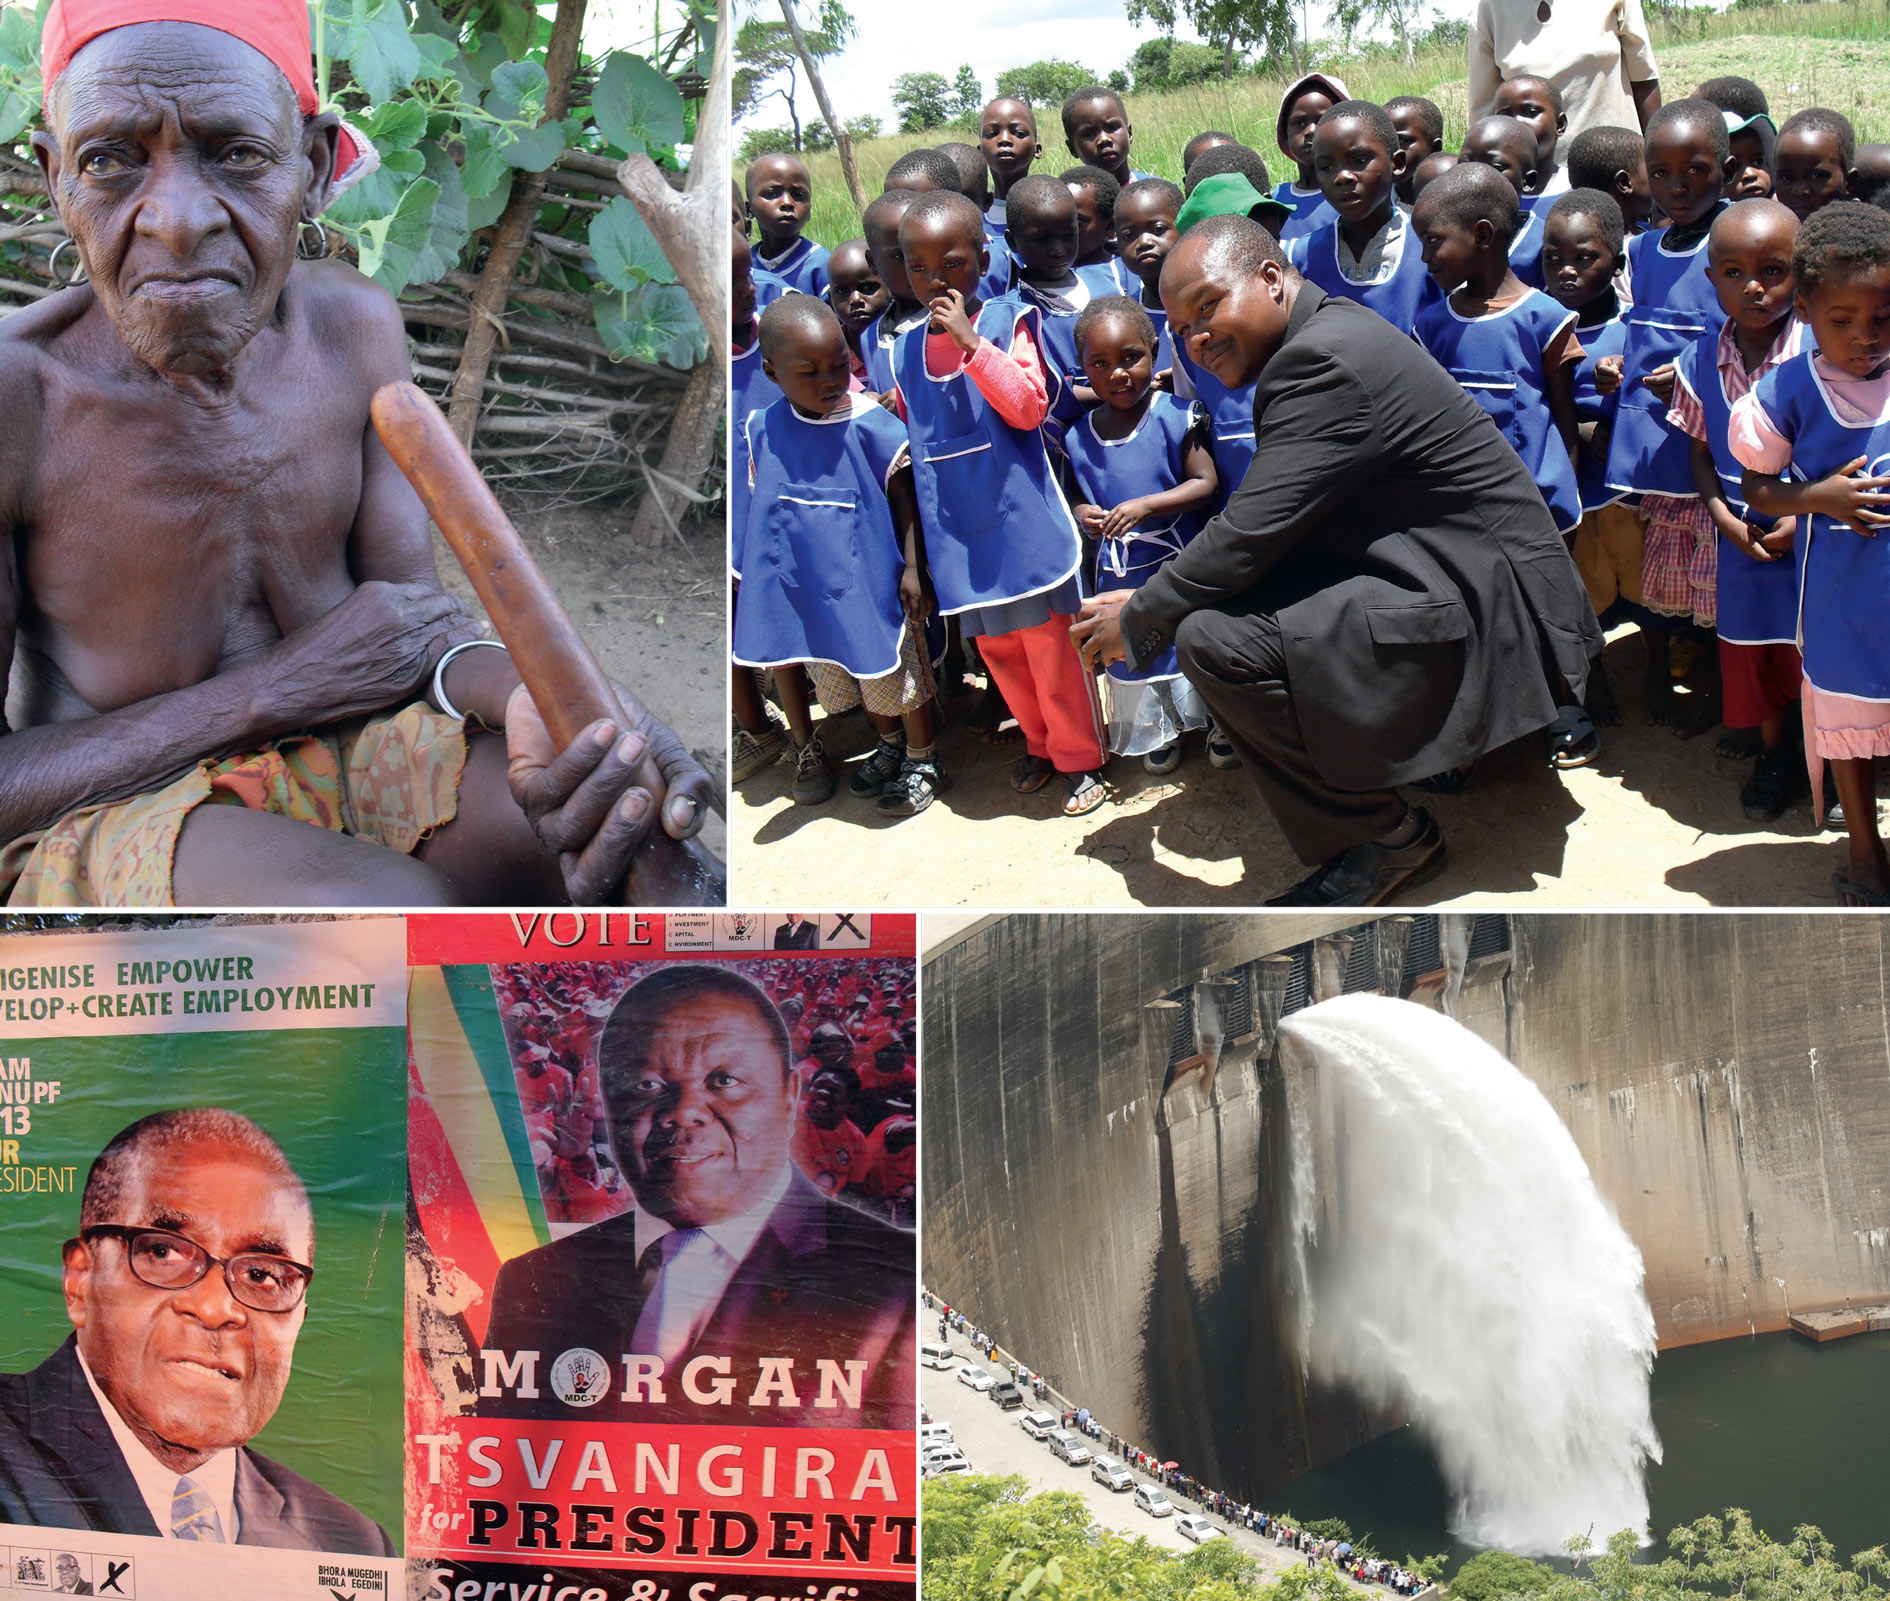 Clockwise from top left: 78-year-old Esnaath Chilabala, from Binga in the province of Matabeleland North; ZANU PF MP Godfrey Gandawa with primary schoolchildren in Katenhe; the Kariba dam for hydroelectric power, which is shared by Zimbabwe and Zambia; rival election posters for Mugabe and Tsvangirai.